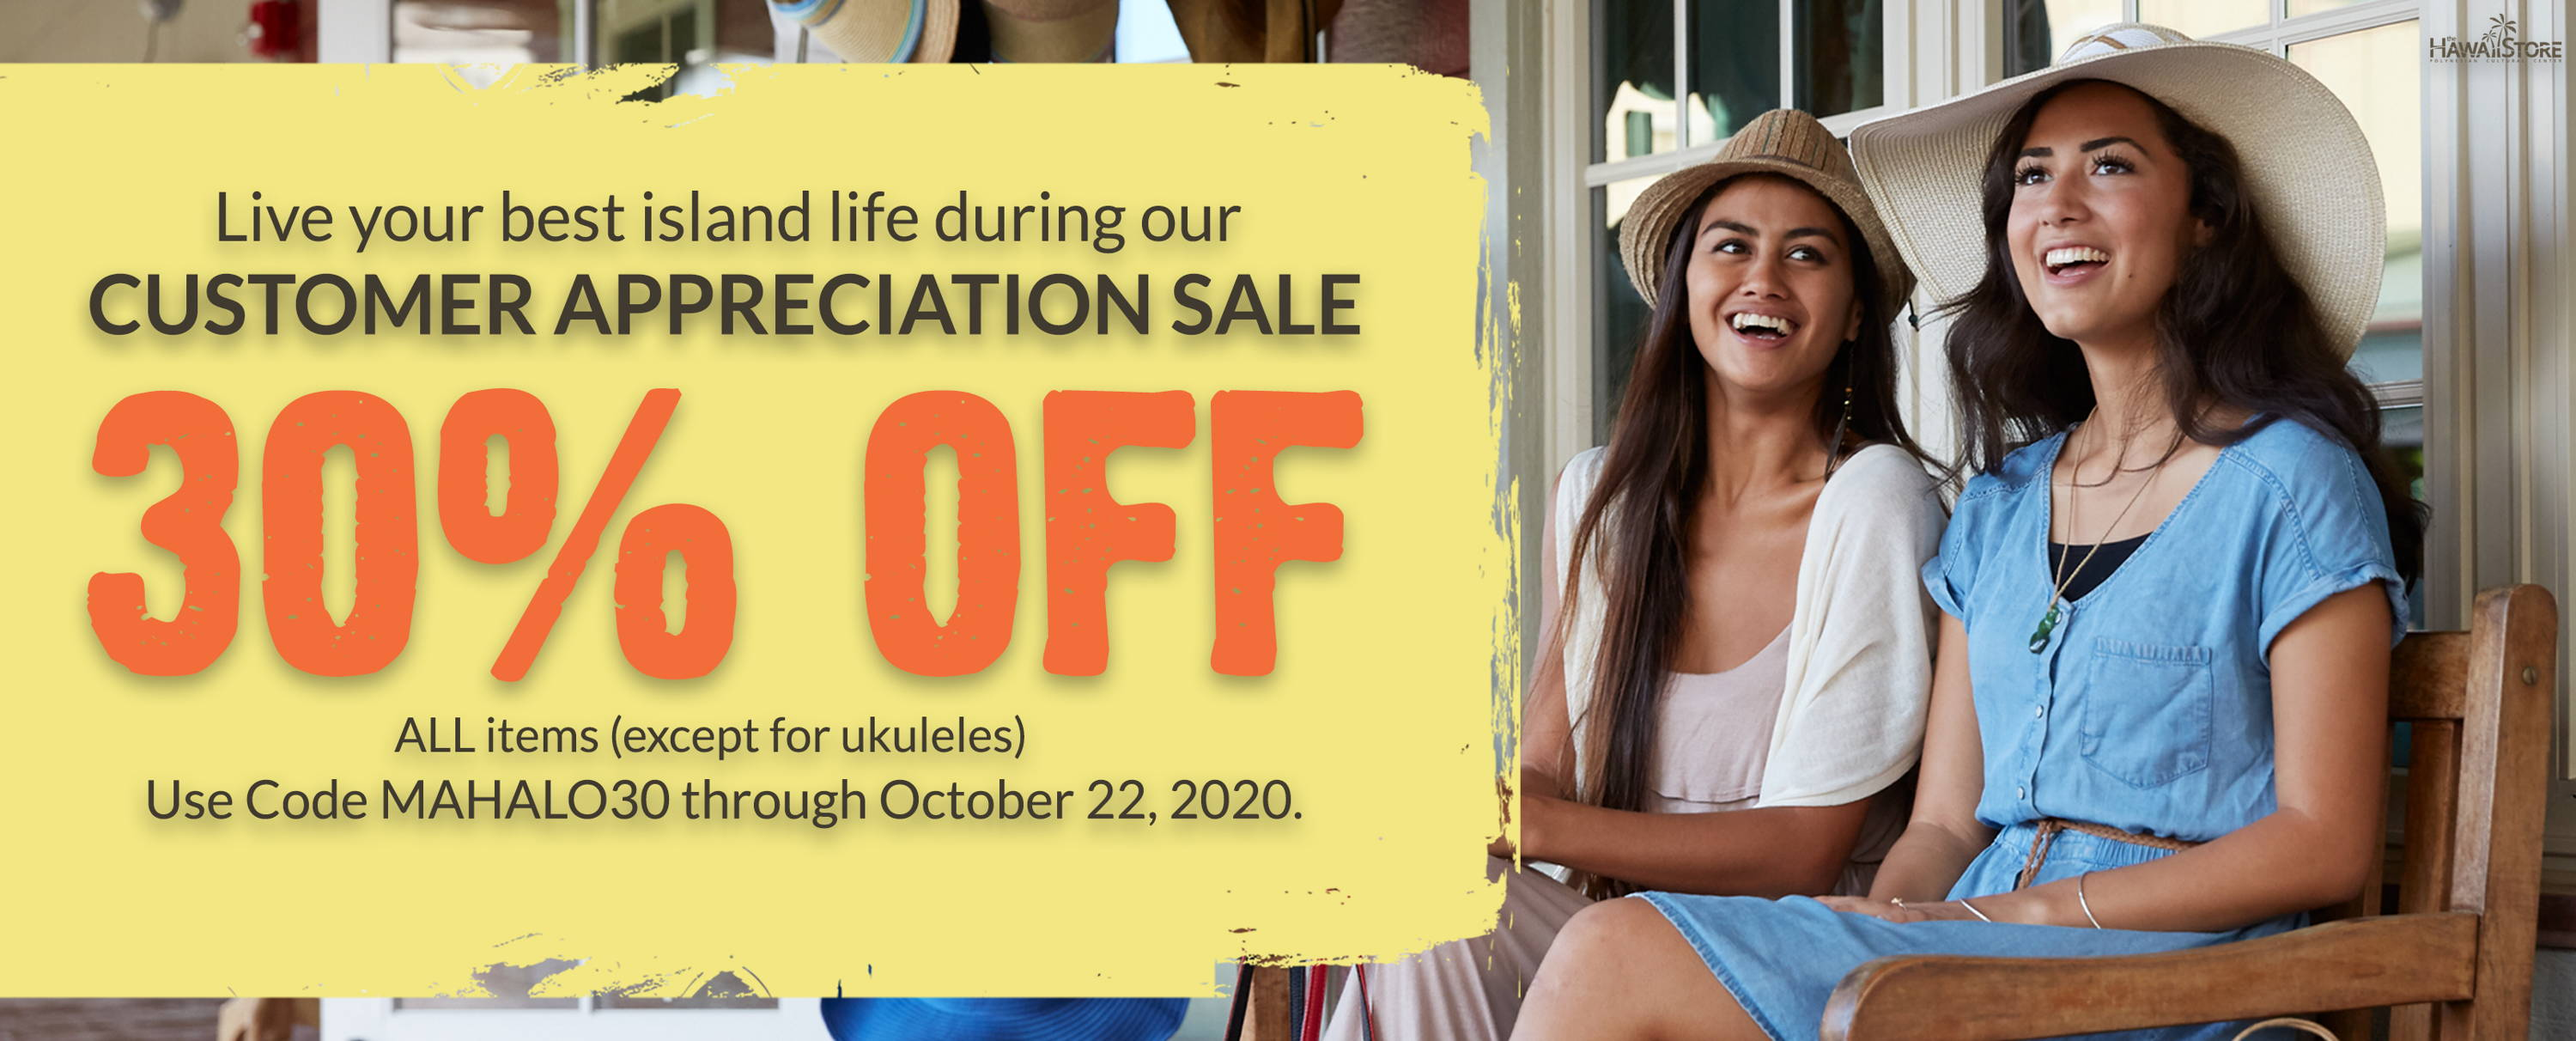 Live your best island life during our CUSTOMER APPRECIATION SALE!